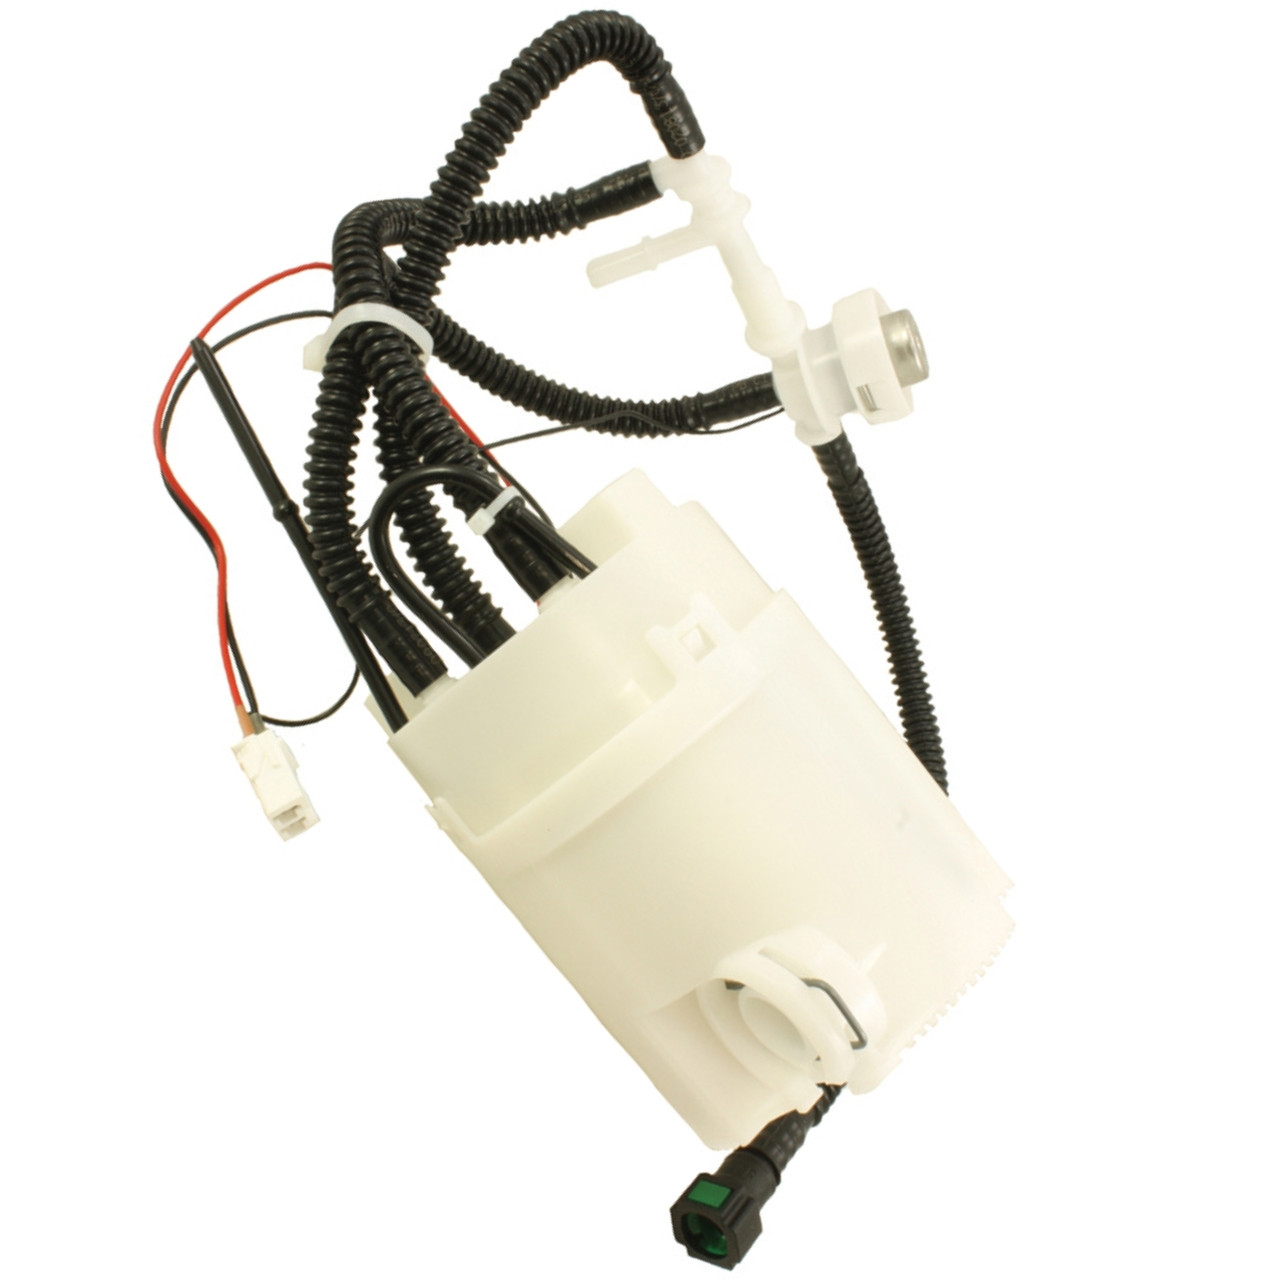 Land Rover Discovery 3 2.7 TDV6 In Tank Fuel Pump